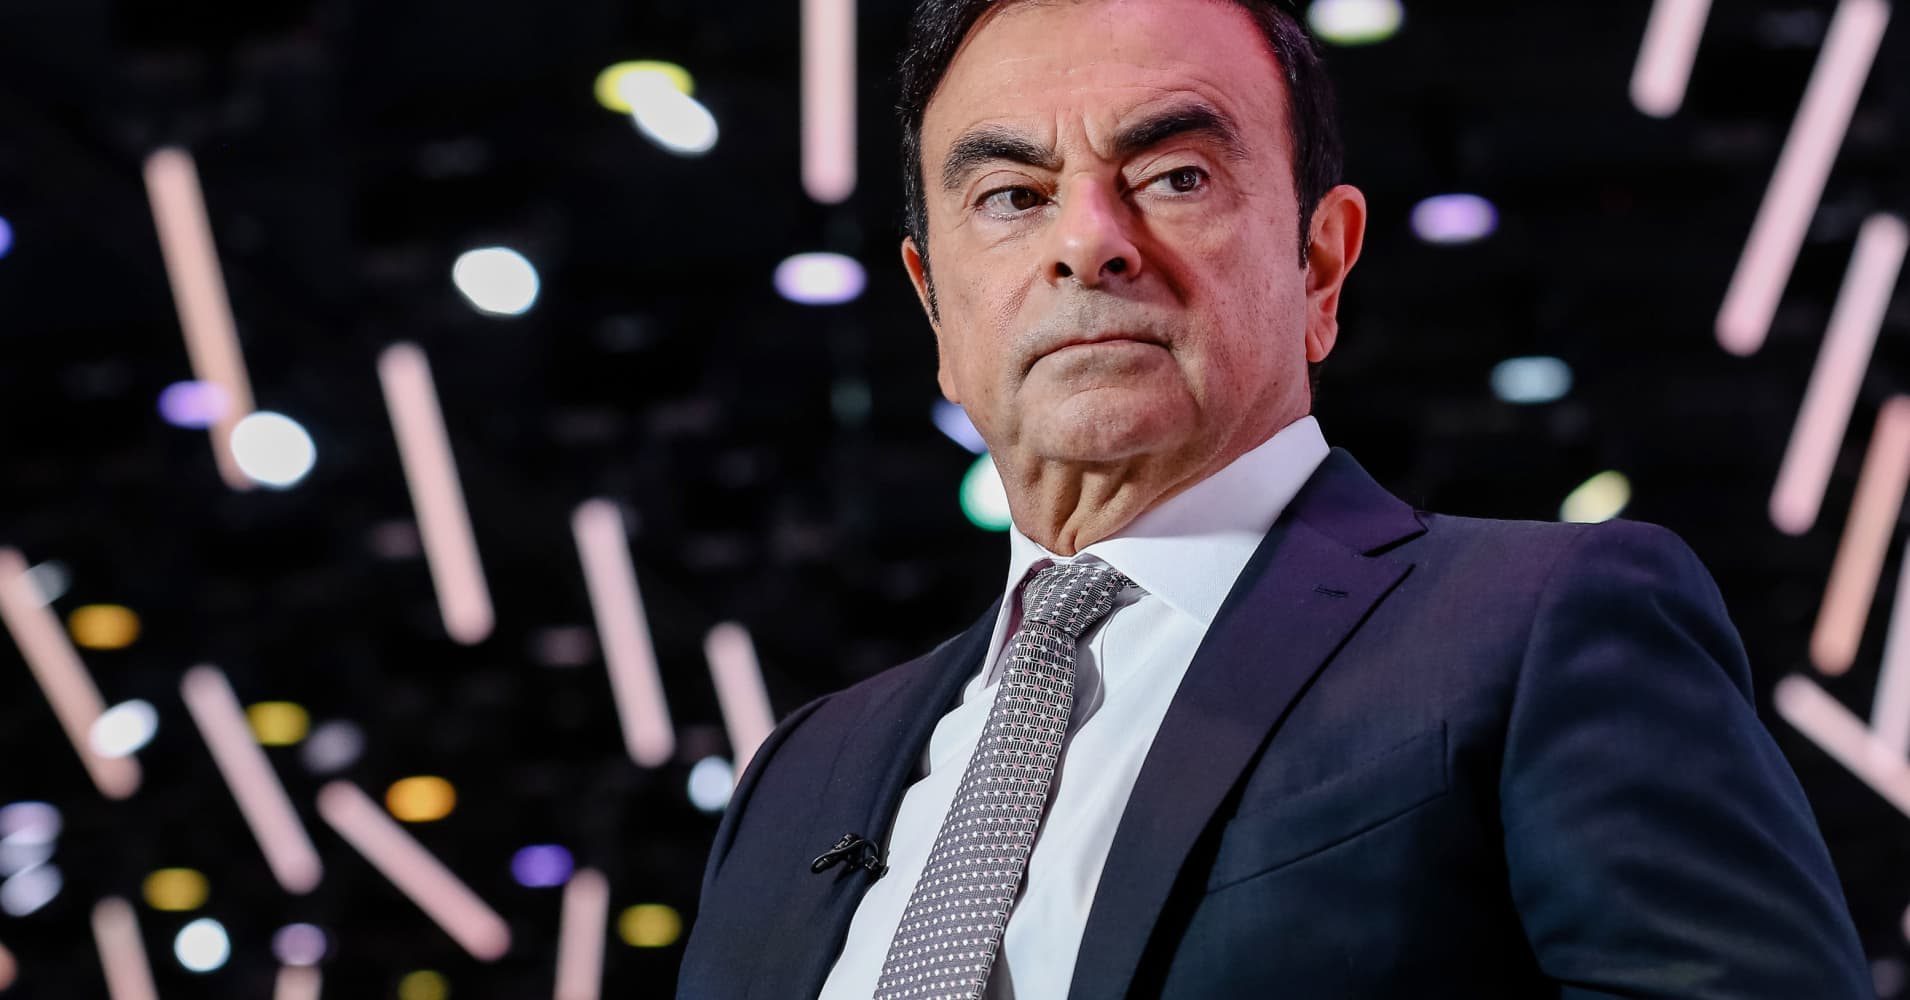 Tokyo court grants bail to ex-Nissan Chairman Ghosn after more than 3 months in jail